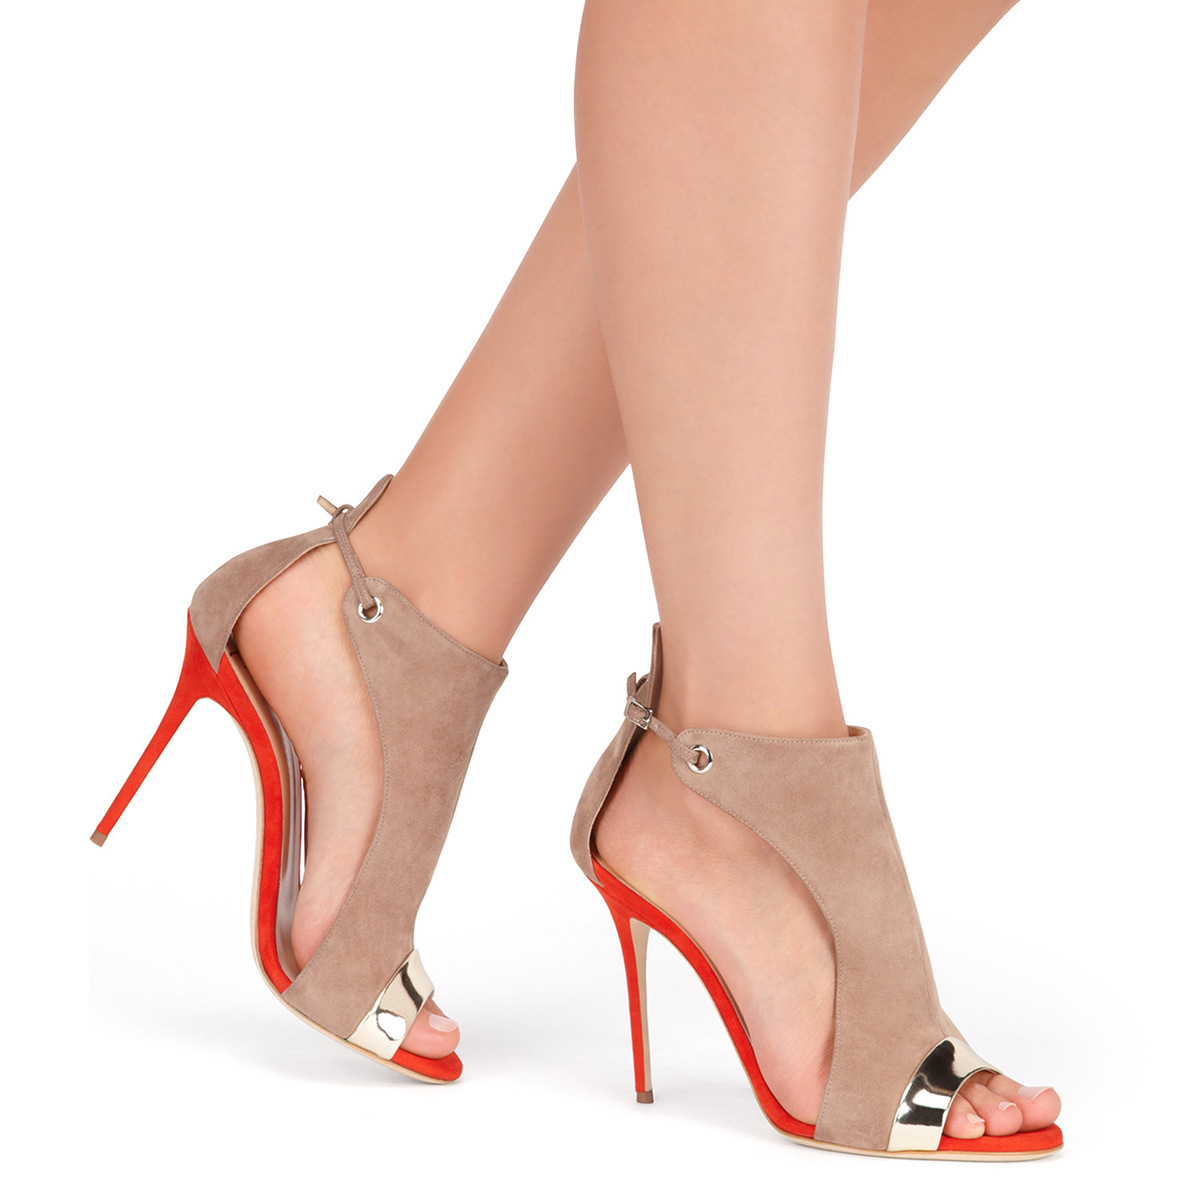 Brand Fashion Women Pumps Ankle Strap High Heel Pumps Shoes for Women Sexy Peep Toe High Heels Sandals Party Wedding Shoes Woman fashion buttons rivet studs high heels designer gladiator sandals red black women pumps party dress sexy wedding shoes woman